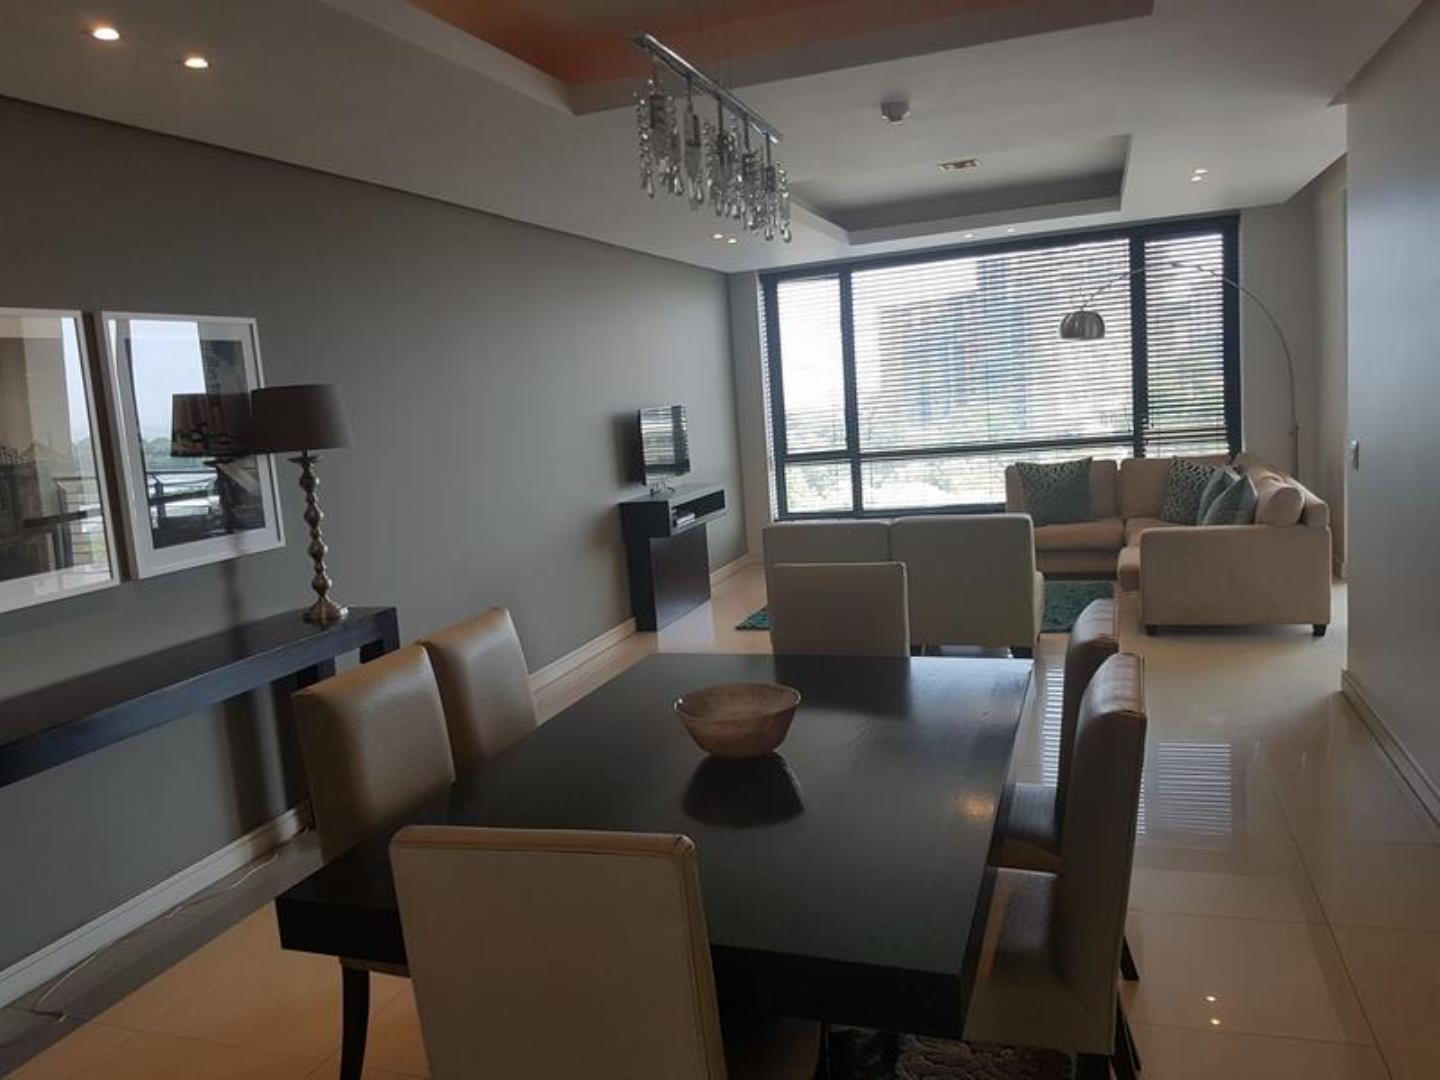 2 Bedroom  Apartment for Sale in Sandton - Gauteng